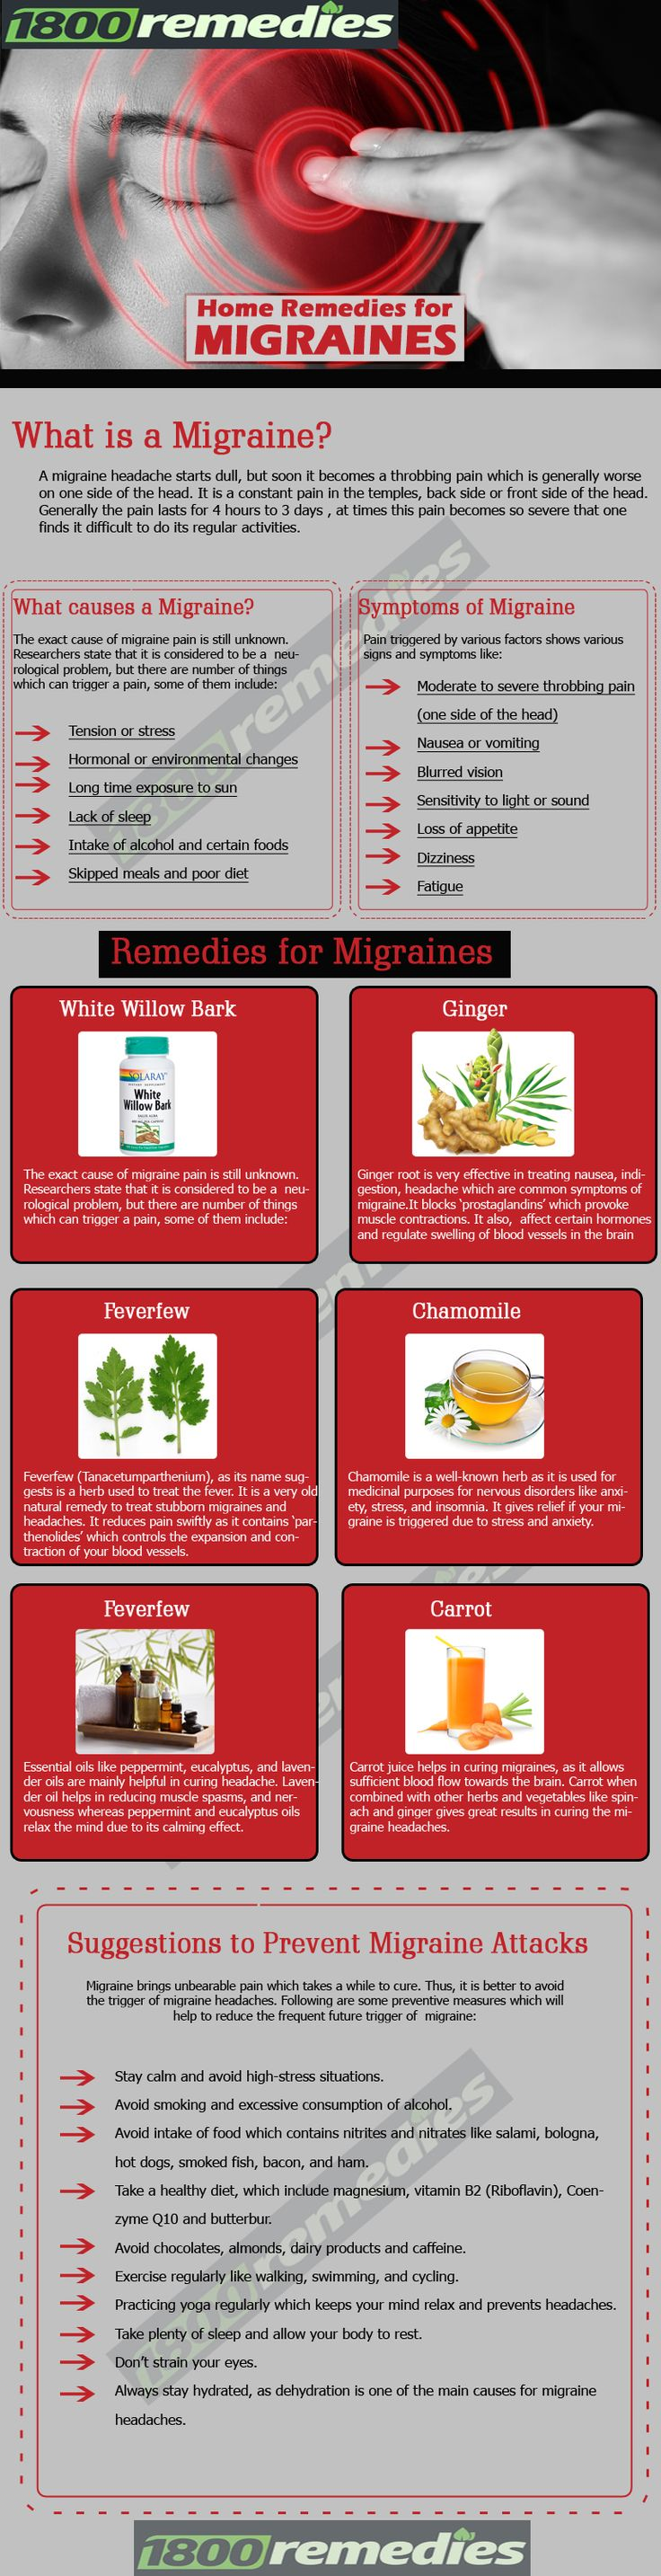 As you read this article, you will discover plenty of best home remedies for migraines which you can use to cure migraine at your home. www.1800remedies.com